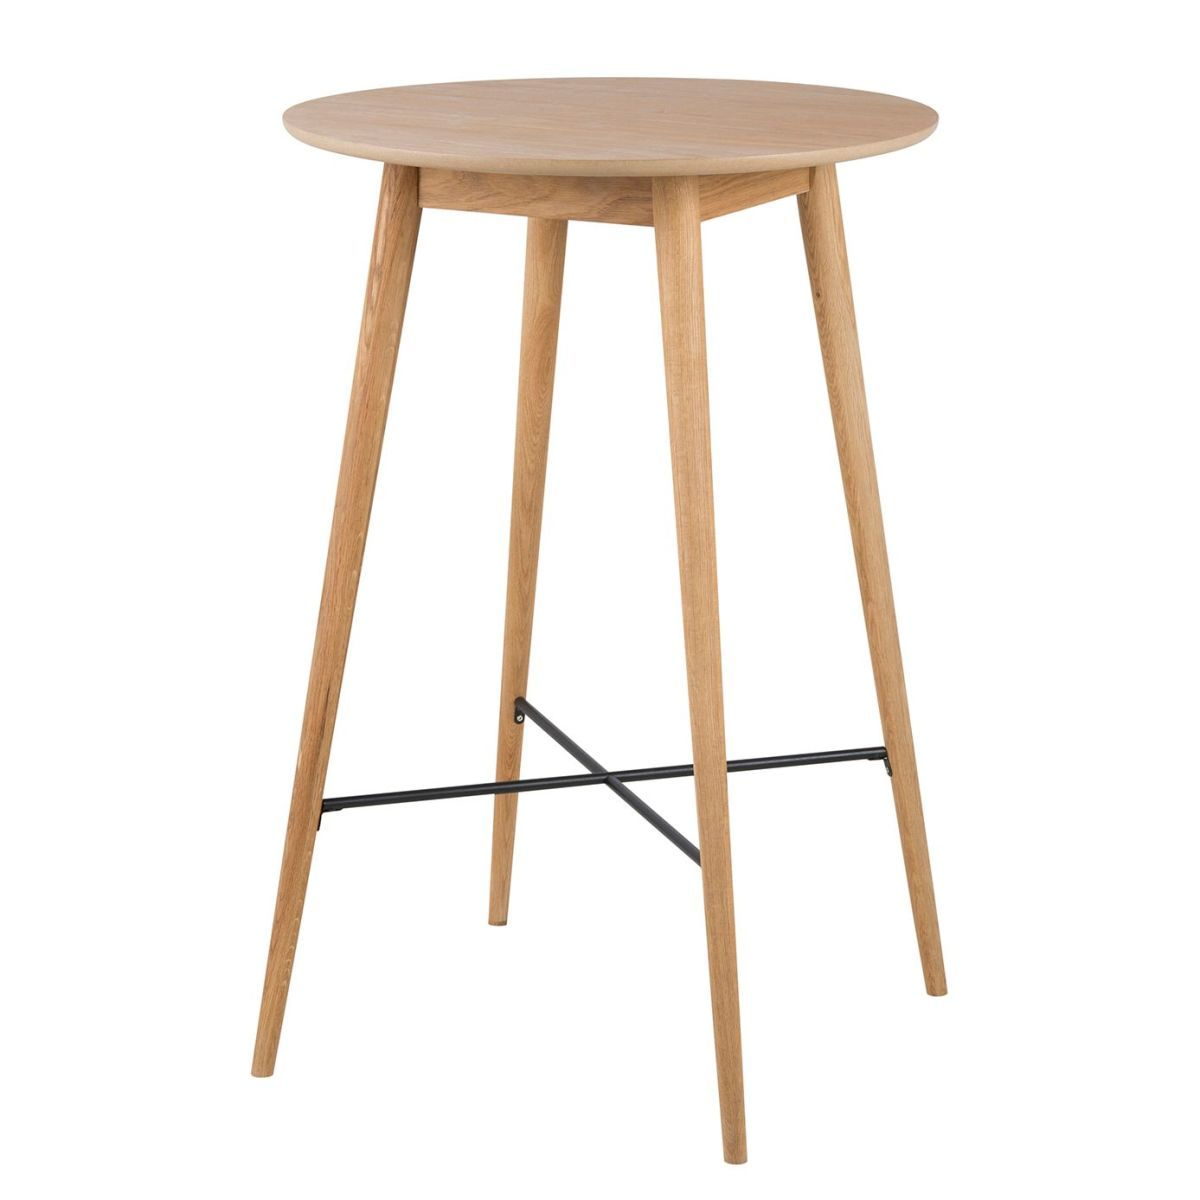 Songmics Lot De 2 Tabourets De Bar Stool Pin By Ladendirekt On Bar Möbel Table Furniture Bar Stools Table